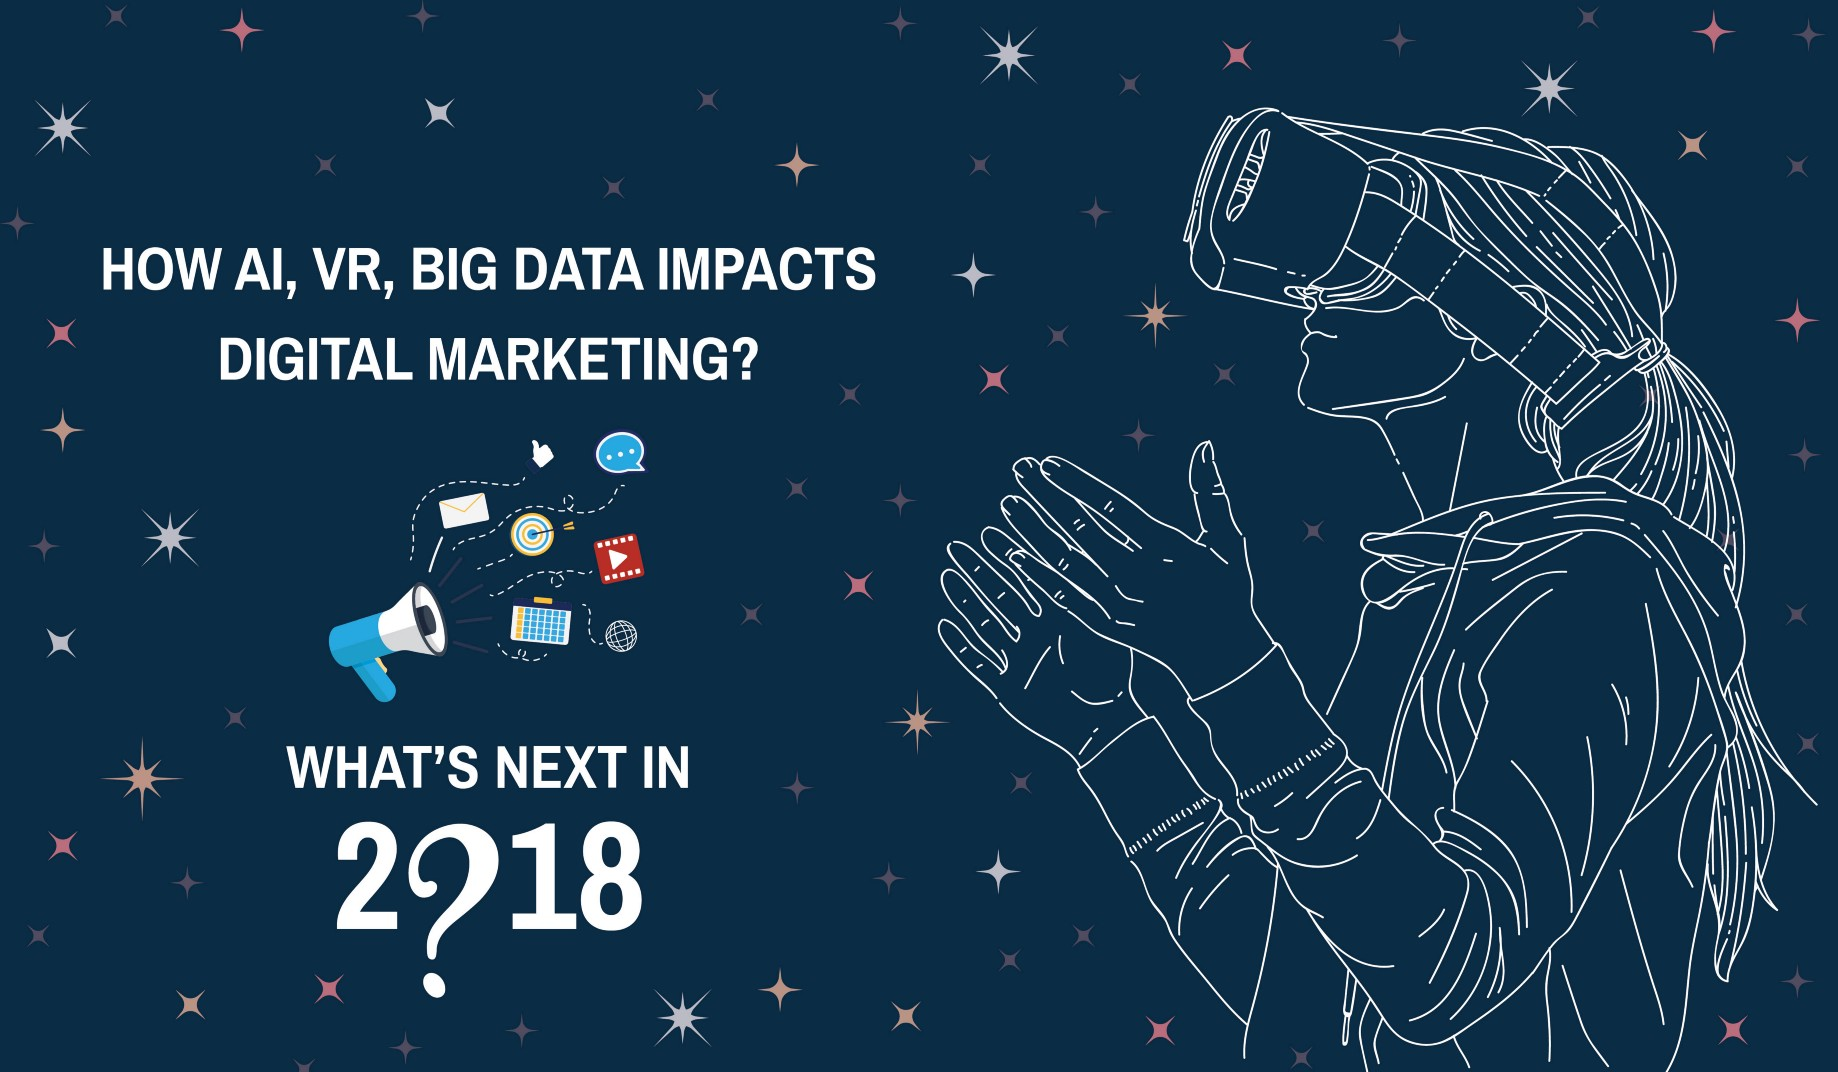 d5a16b0ef41 How AI, VR, Big Data Impacts Digital Marketing? What's Next in 2018?